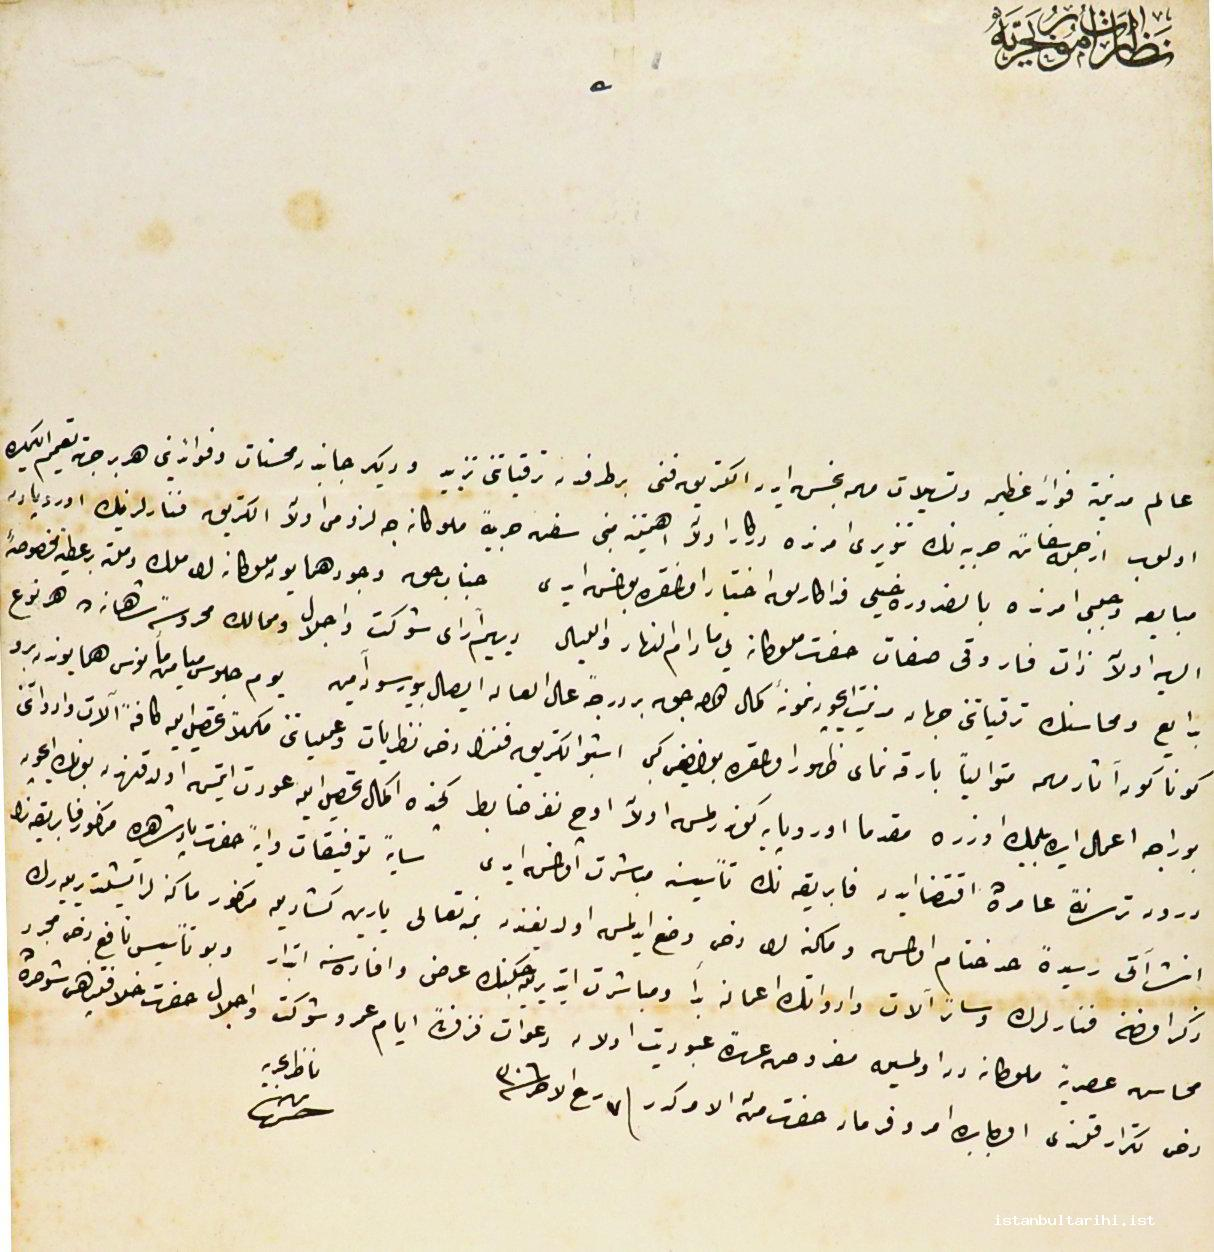 4- Minister of Marine Hasan Hüsnü Paşa's letter dated December 11, 1888 about